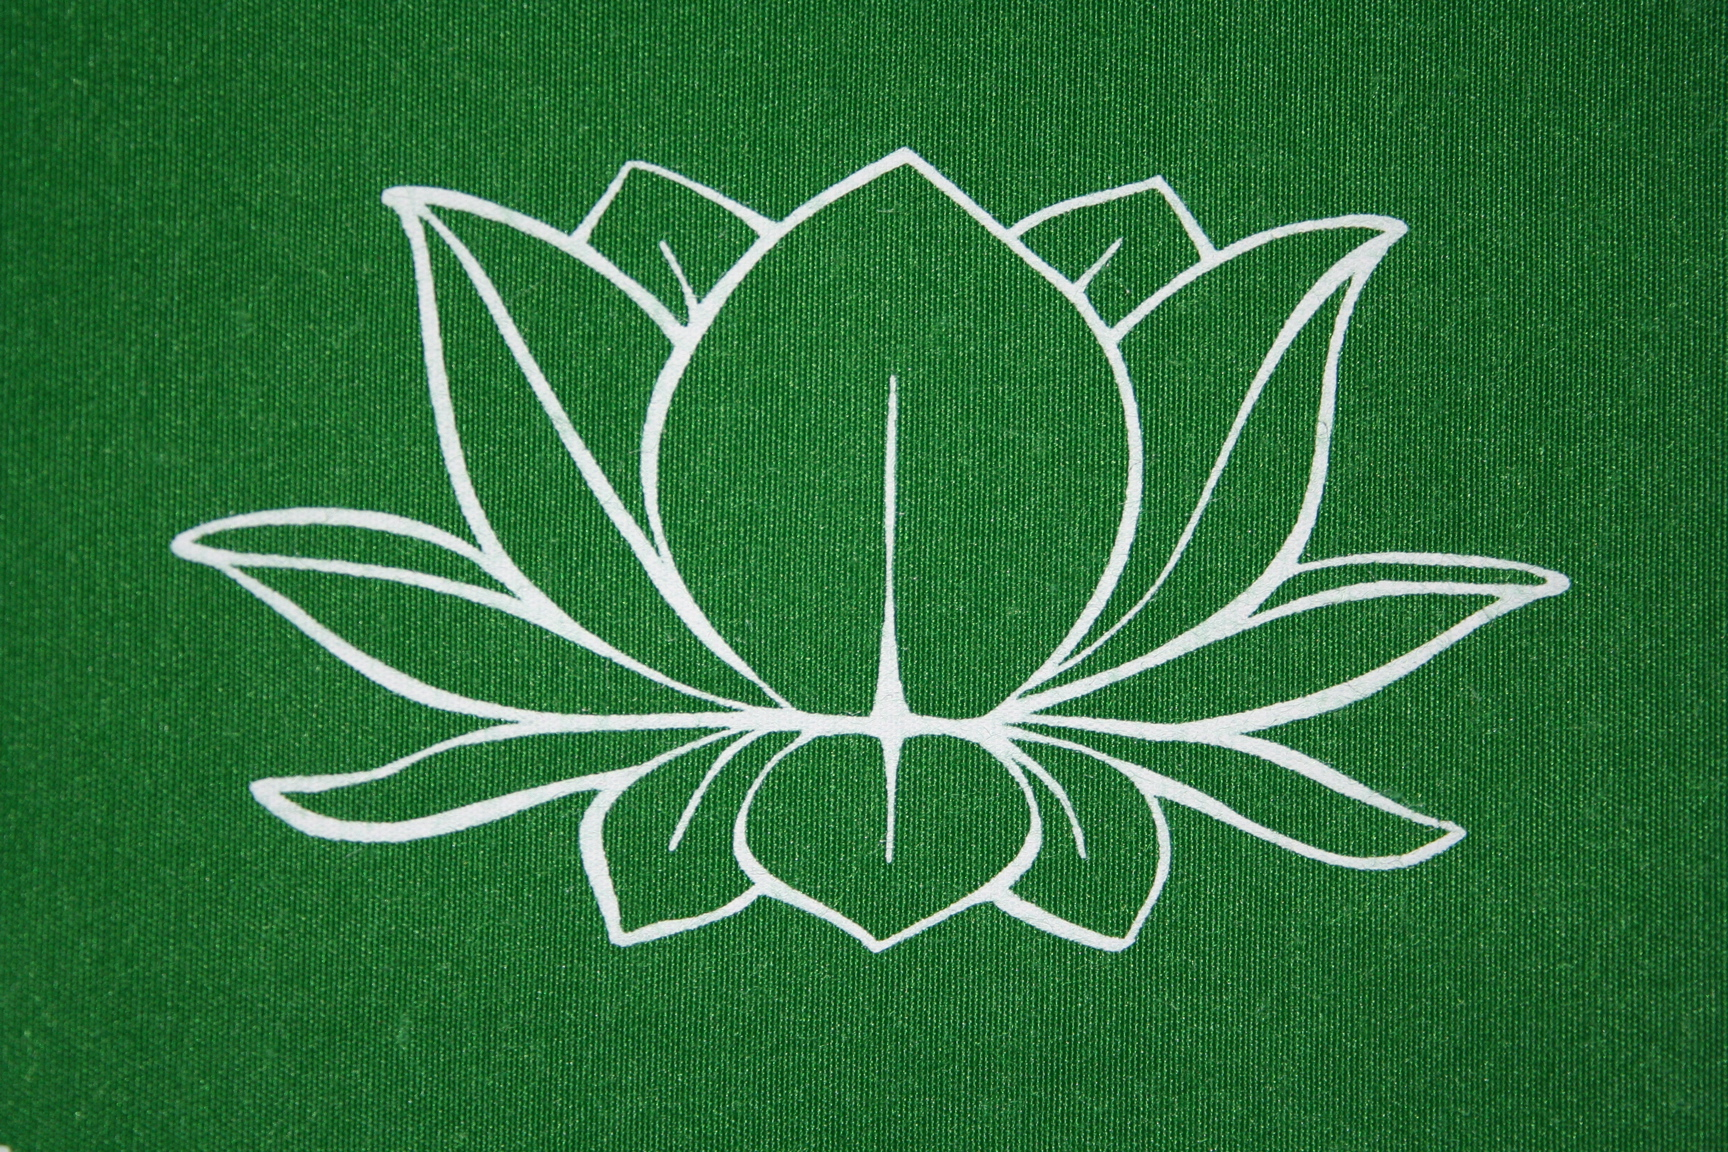 playing with a lotus design i have the lotus i would like to use